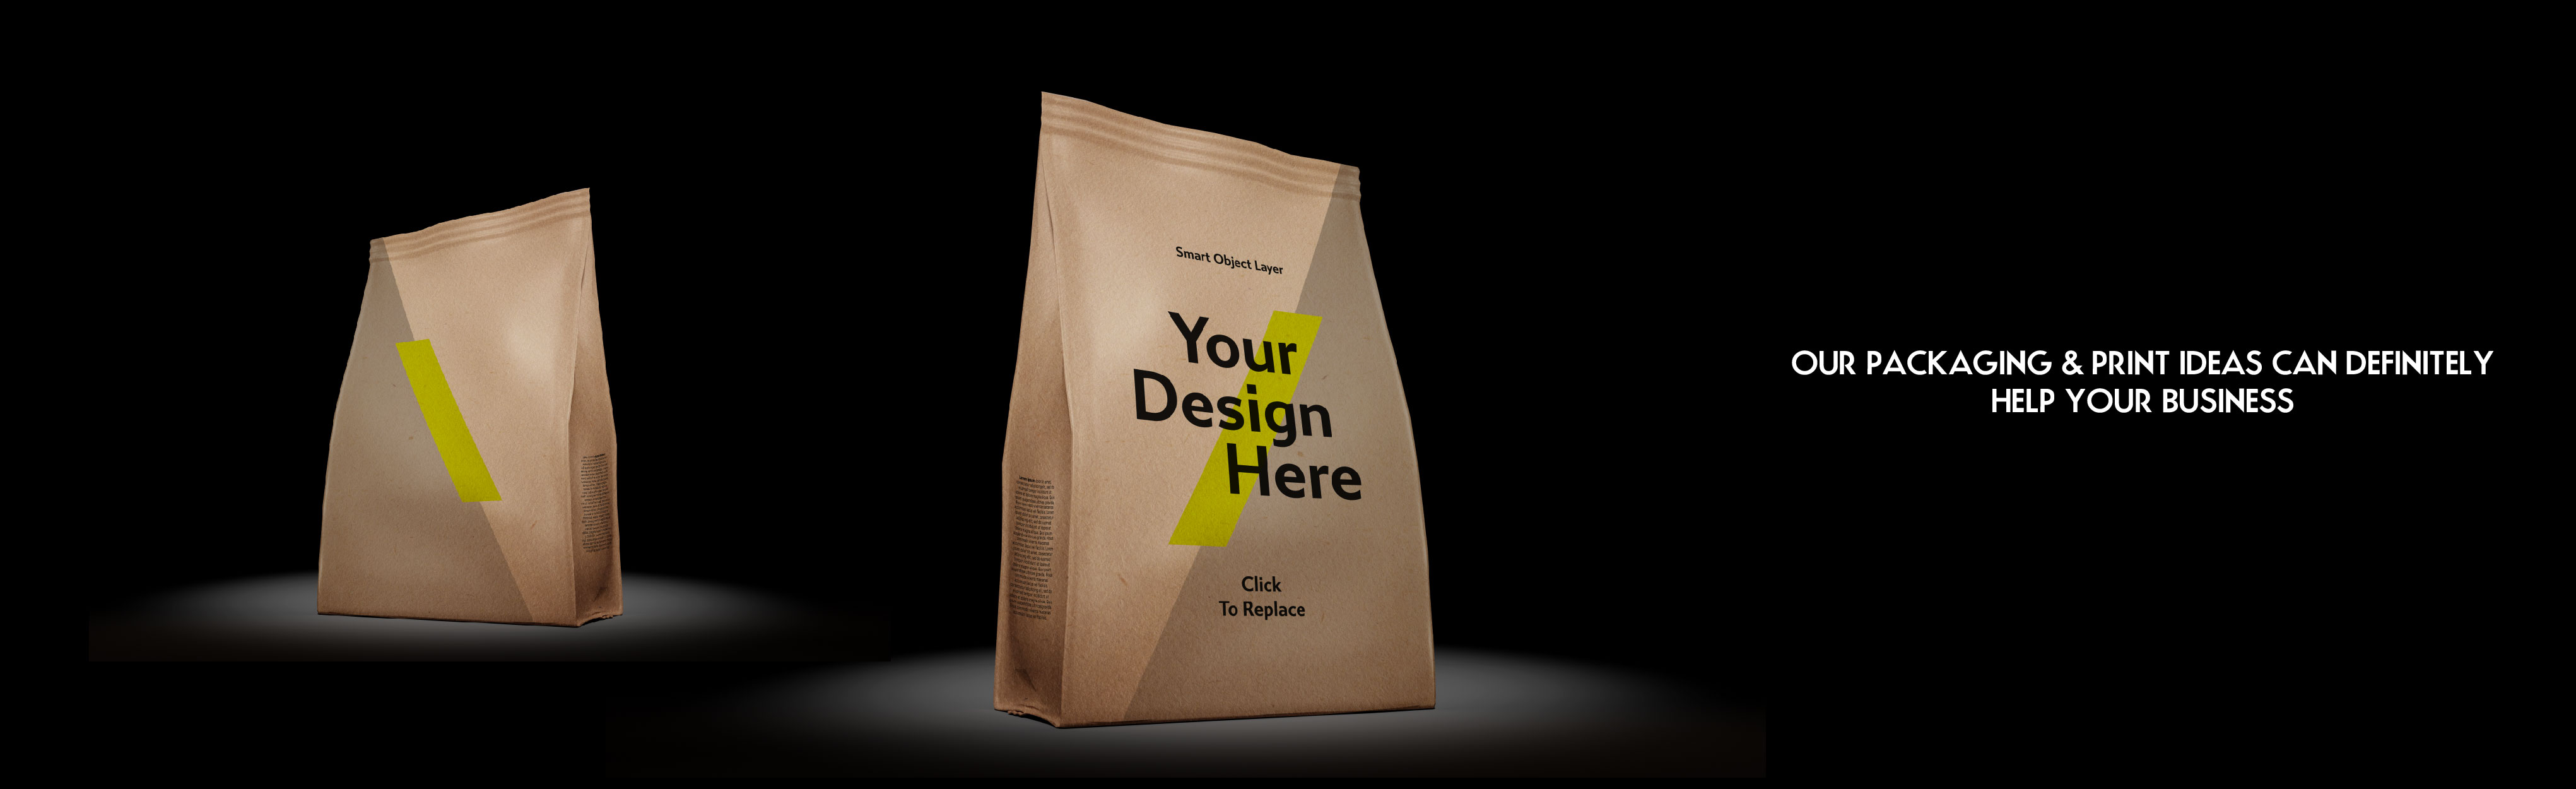 Product Packaging design and printing in India Mumbai